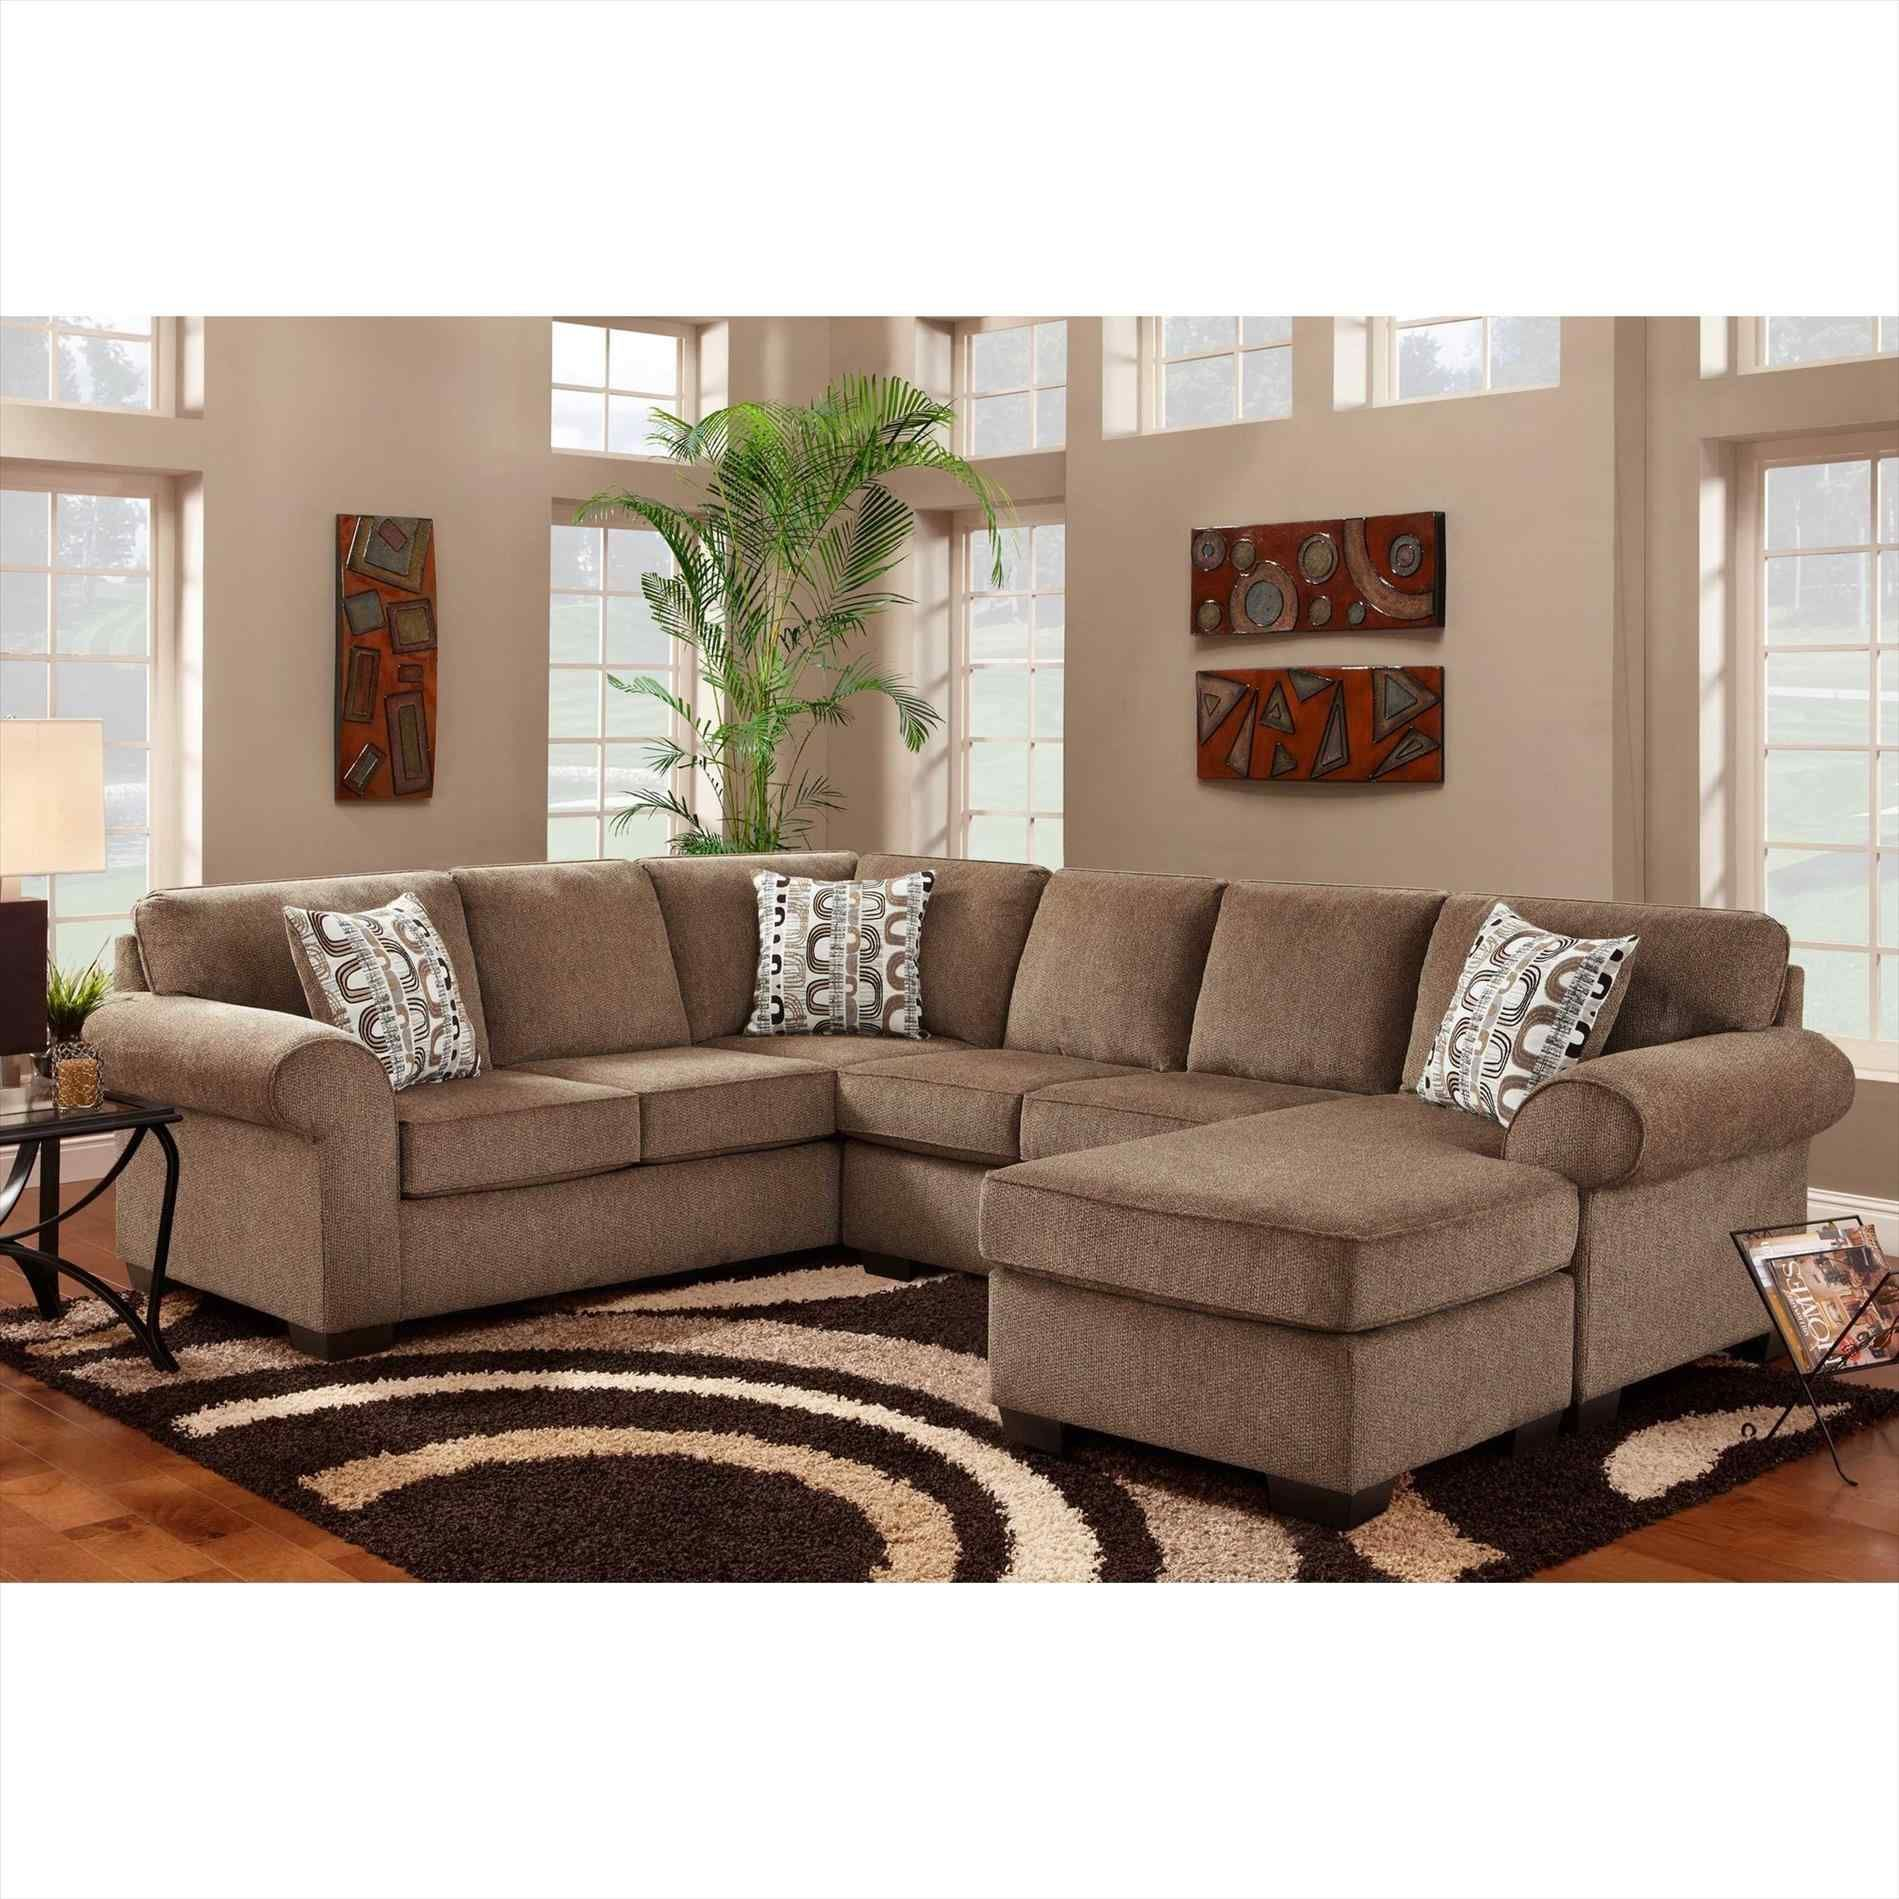 And Leather Sectional Sofa Room Exciting Denim Design For Furniture Amazing Selection Of S Houston Chenille